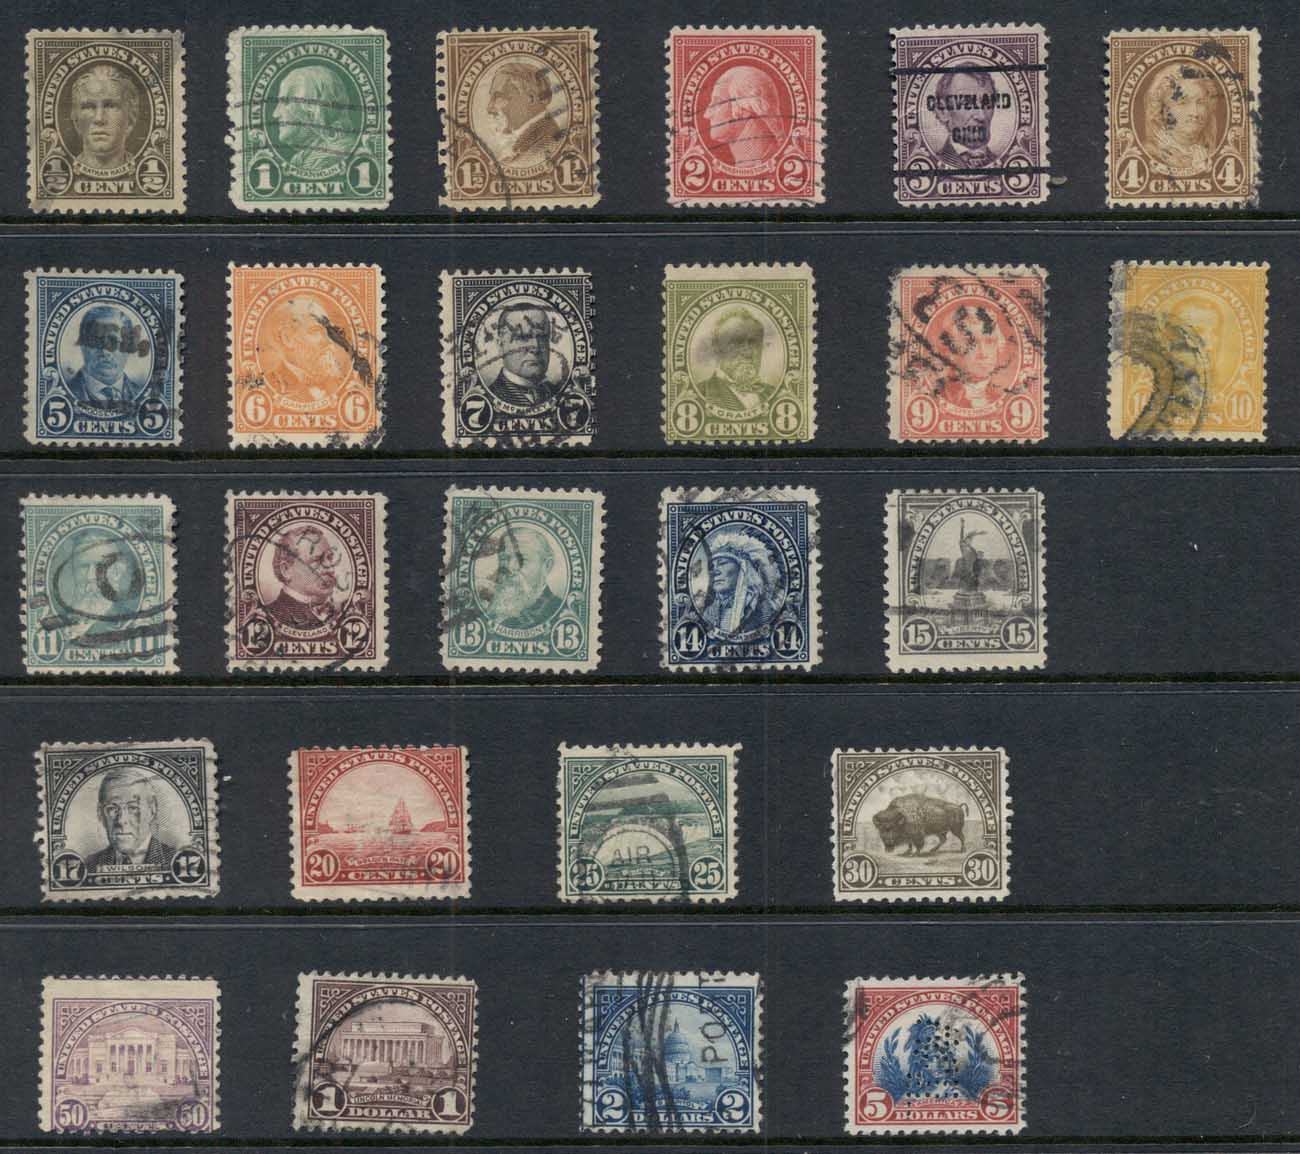 USA 1922-25 Sc#551 on Third Bureaus Flat Plate Perf 11 FU